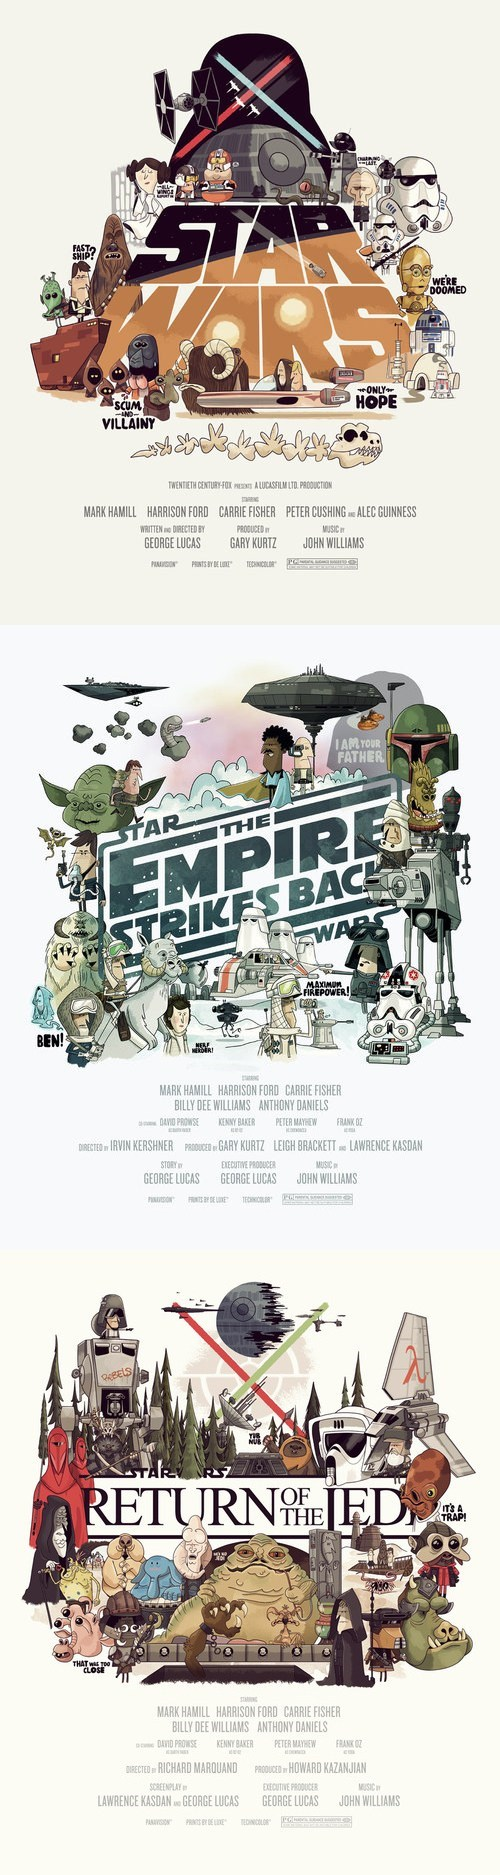 illustrated star wars posters A New Hope return of the jedi characters cartoons hand drawn Empire Strikes Back - 6763205888